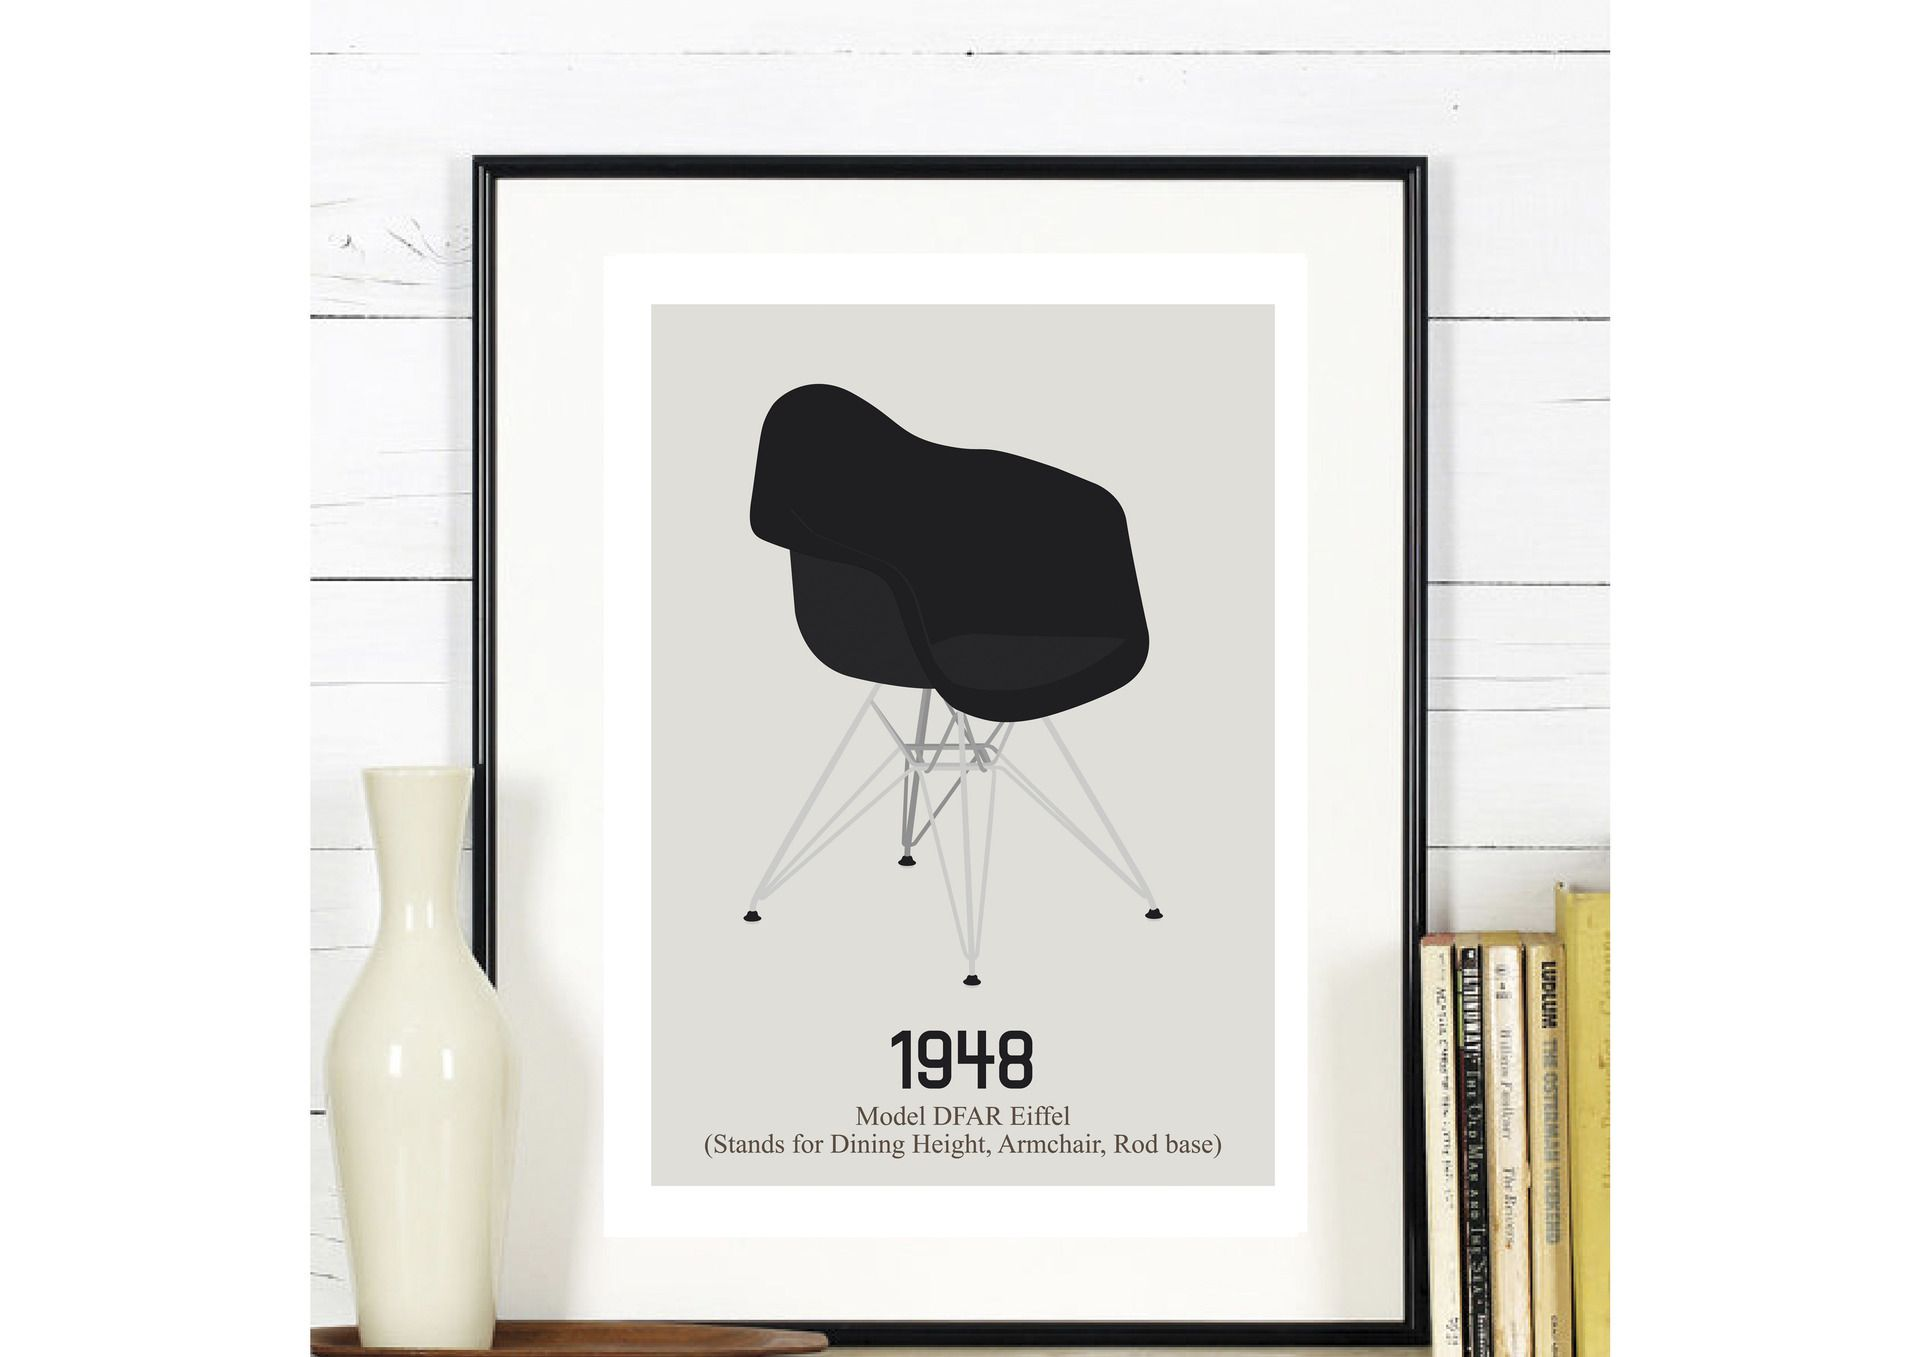 design moderne chaise inspiration scandinave affiches illustrations posters par rgb. Black Bedroom Furniture Sets. Home Design Ideas